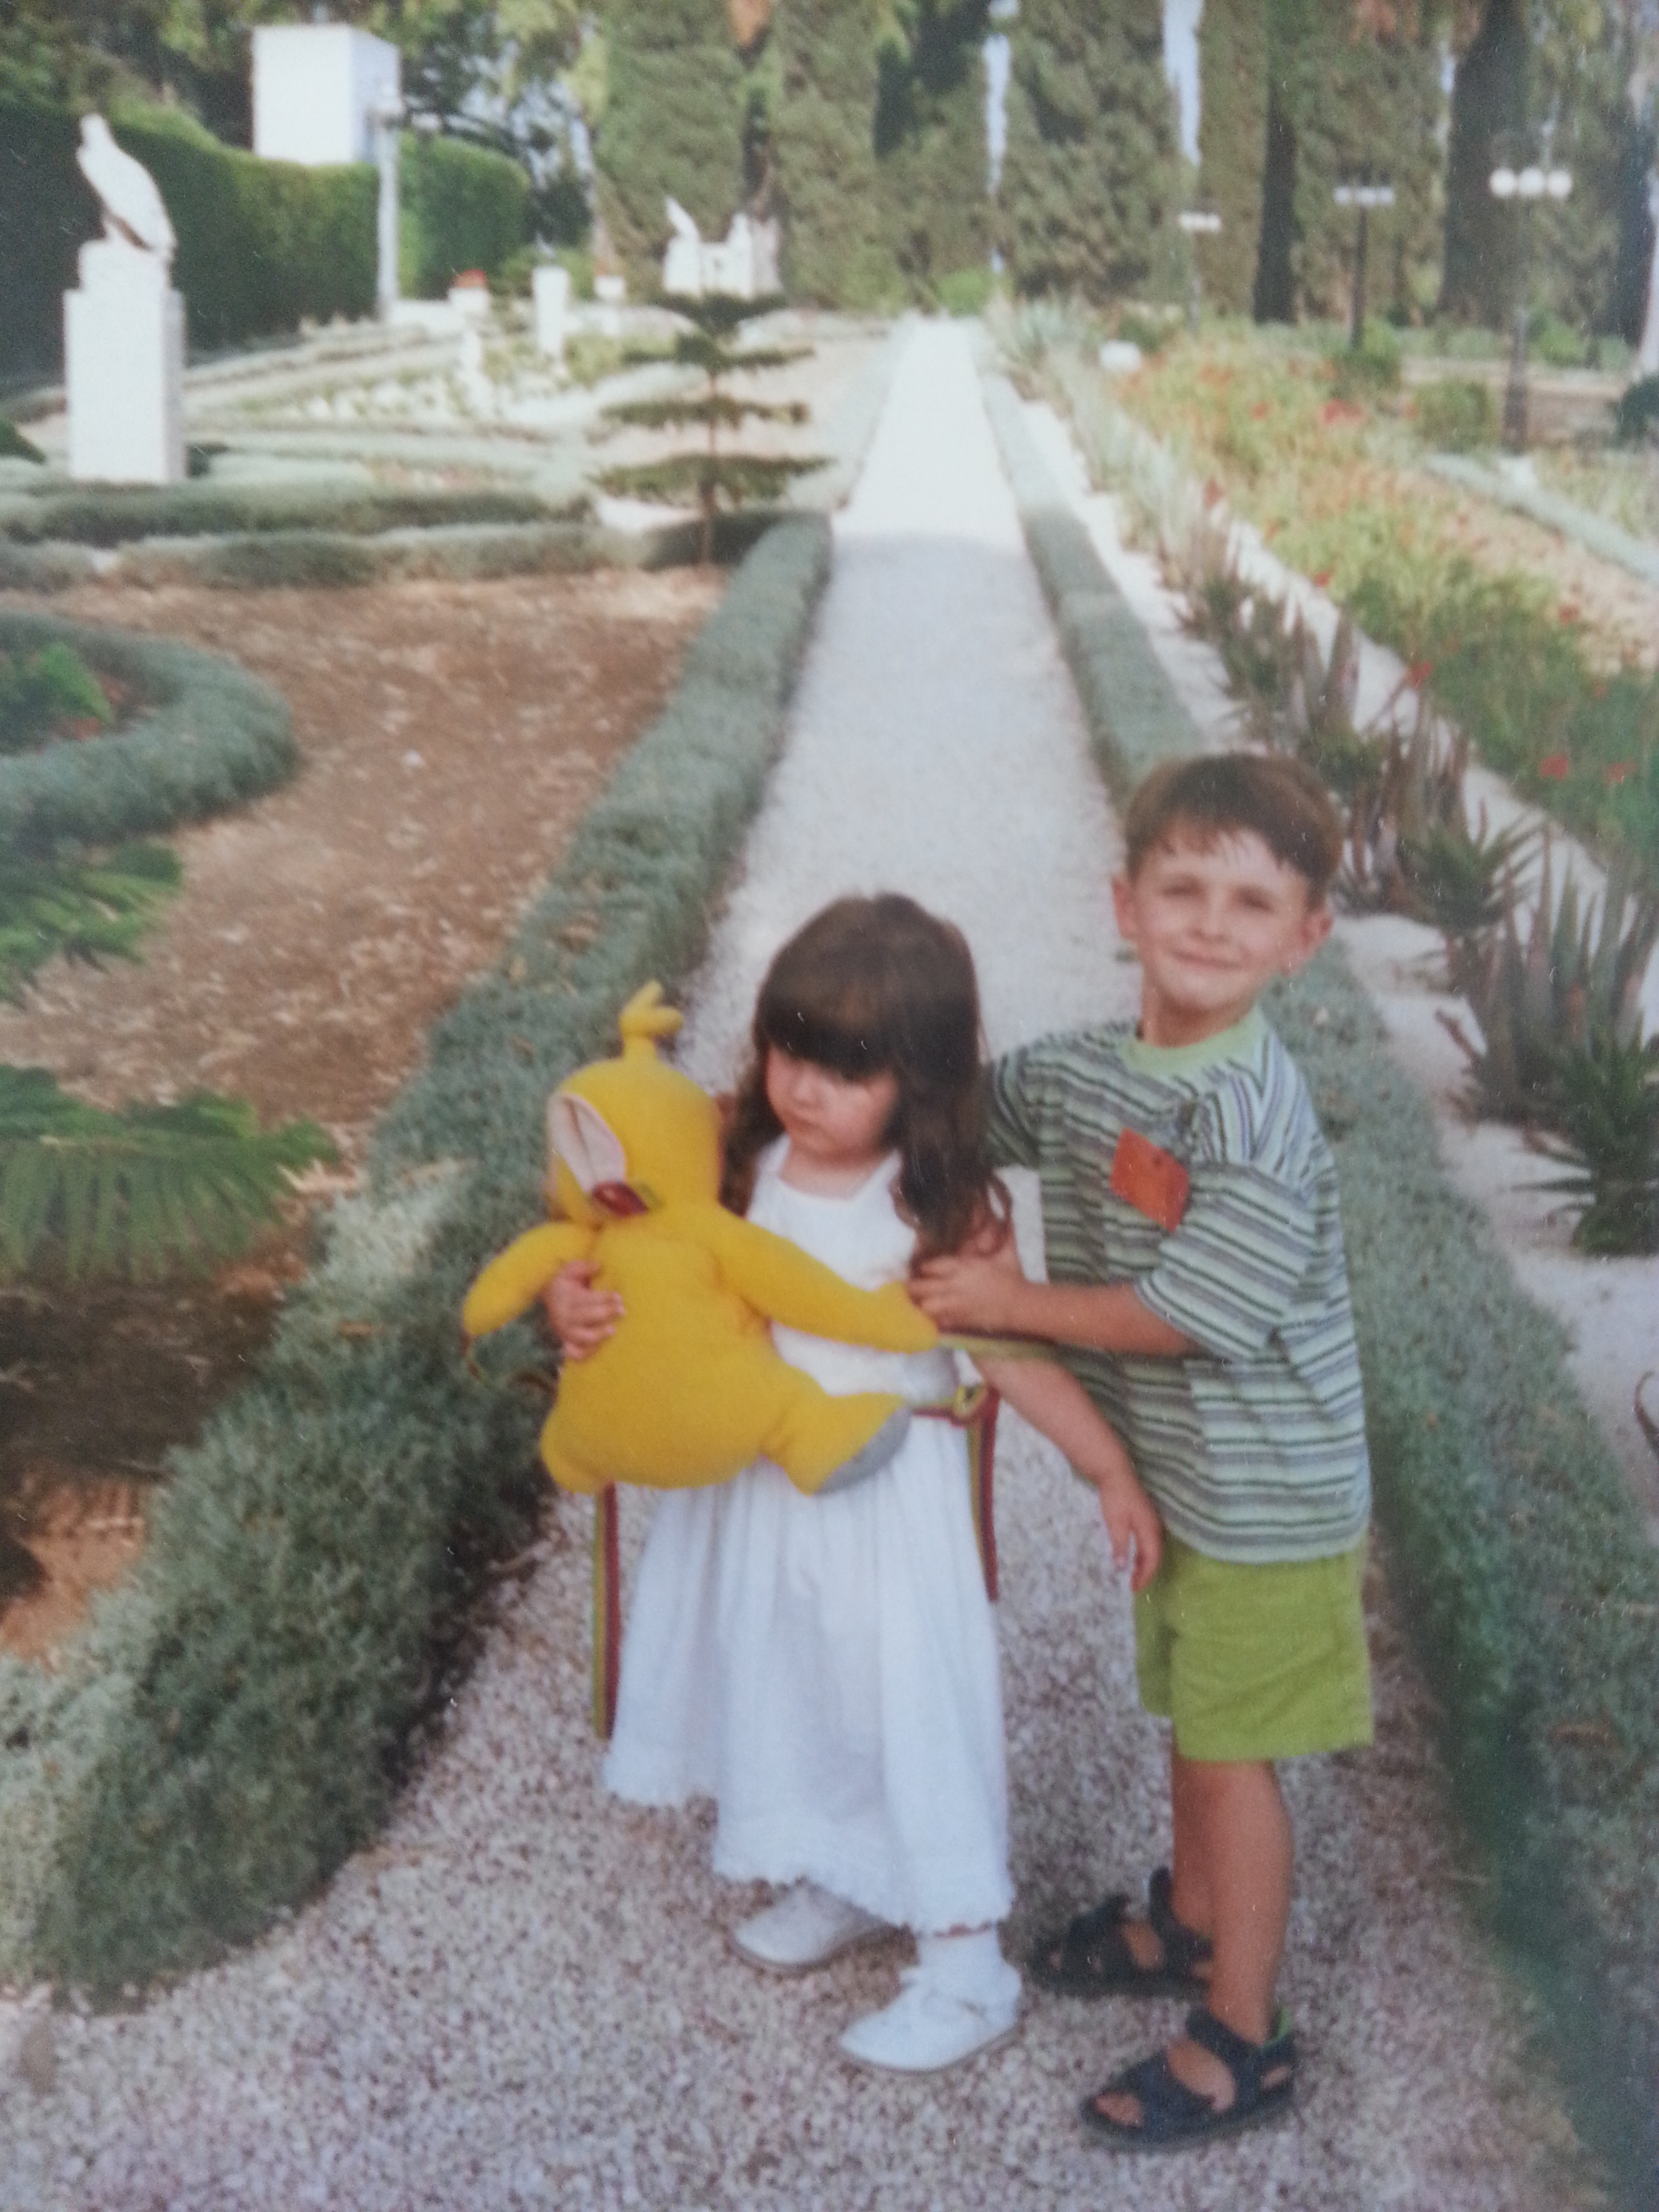 Farrah holding Lala (Teletubbie) with her brother trying to get her to look and smile at the camera in the gardens of Baha'u'llah in Akka, Israel